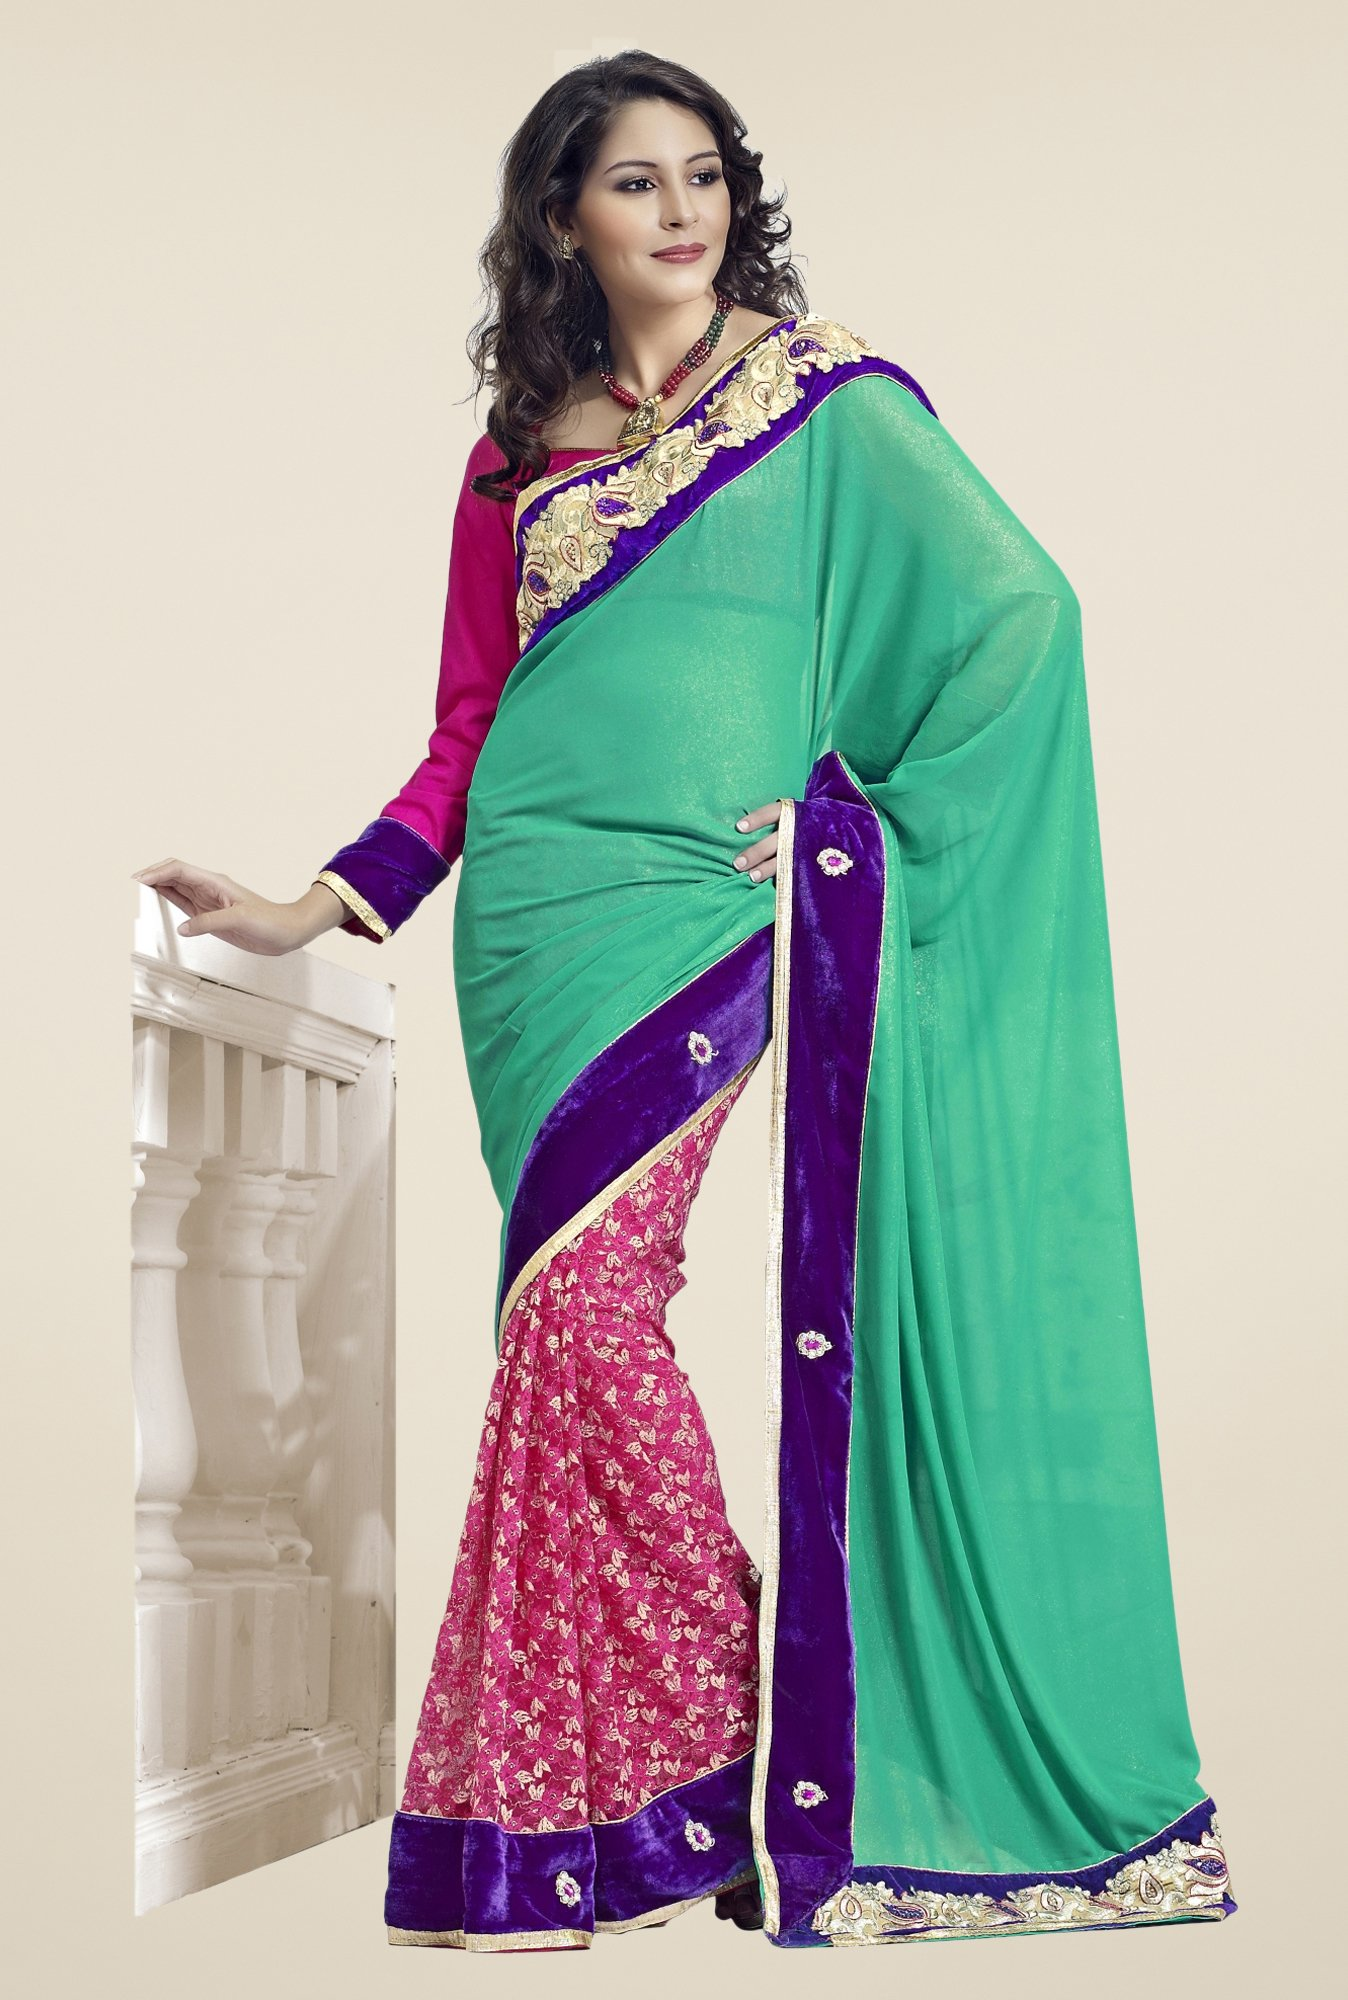 Triveni Pink & Green Embroidered Faux Georgette Saree